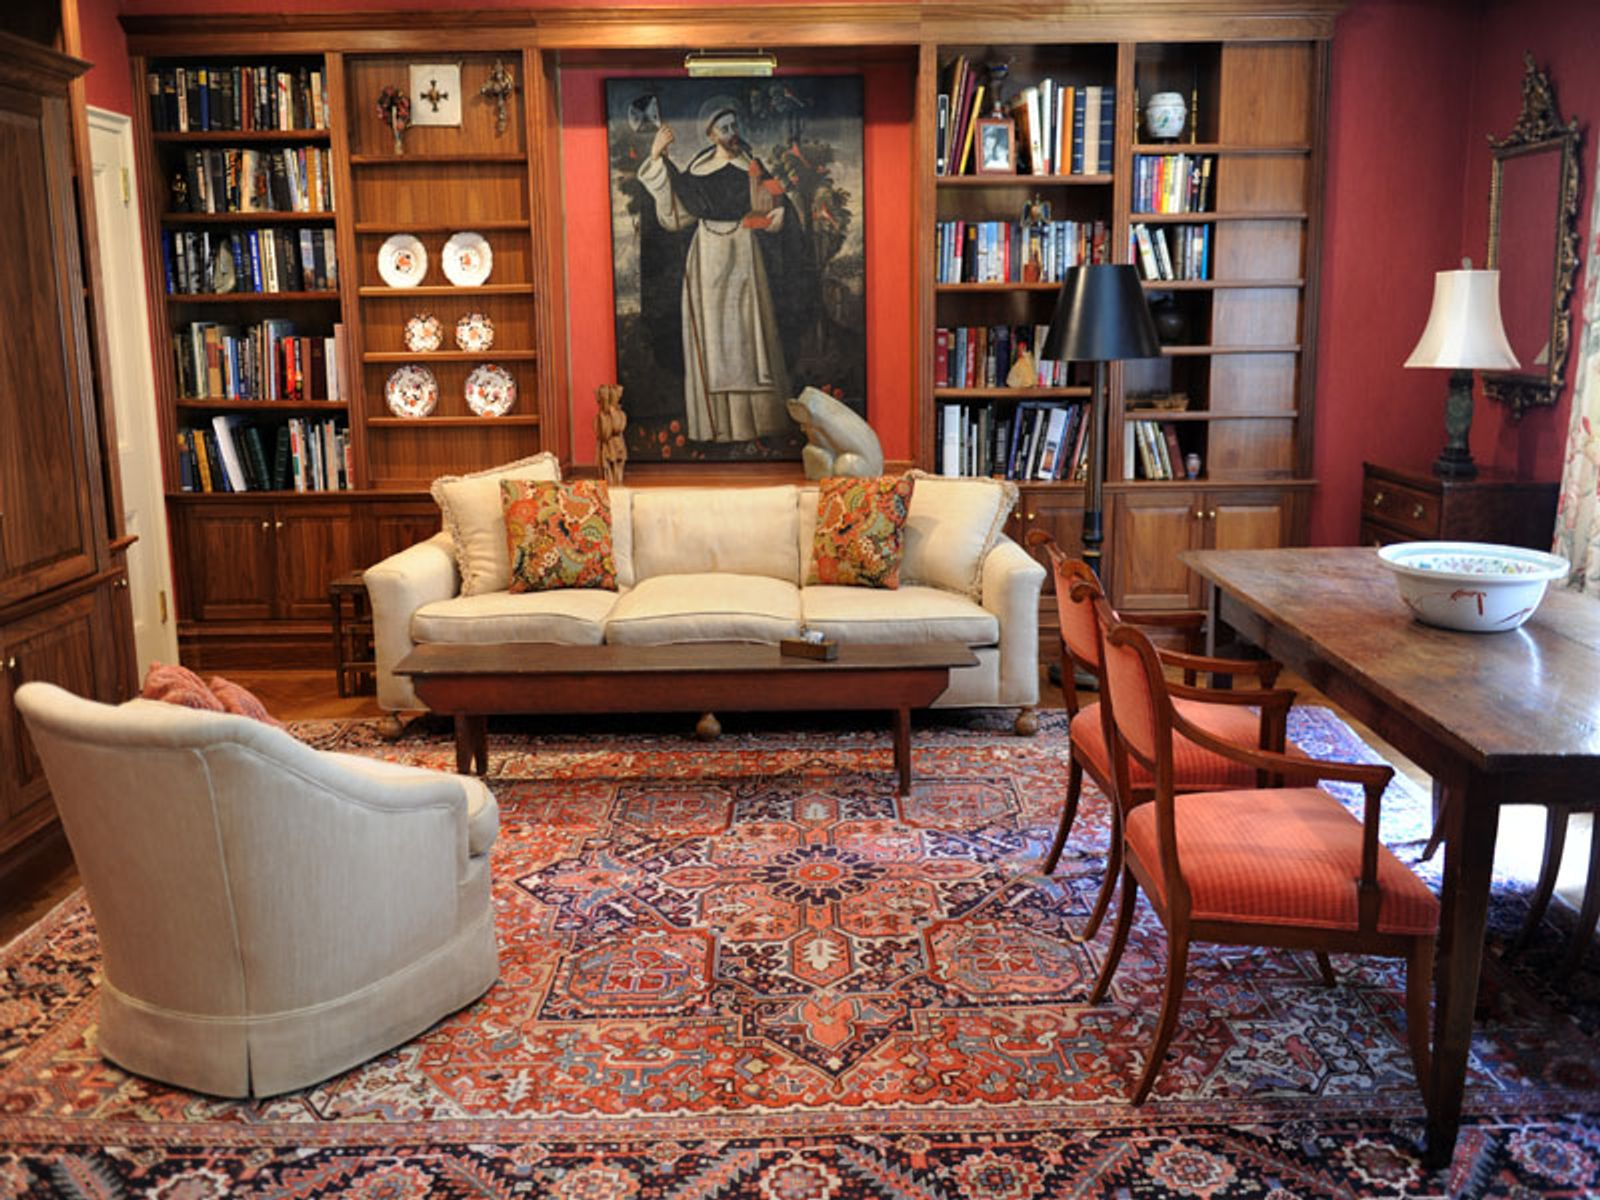 155 East 72nd Street, 5-6B, New York NY Cooperative - New York City Real Estate